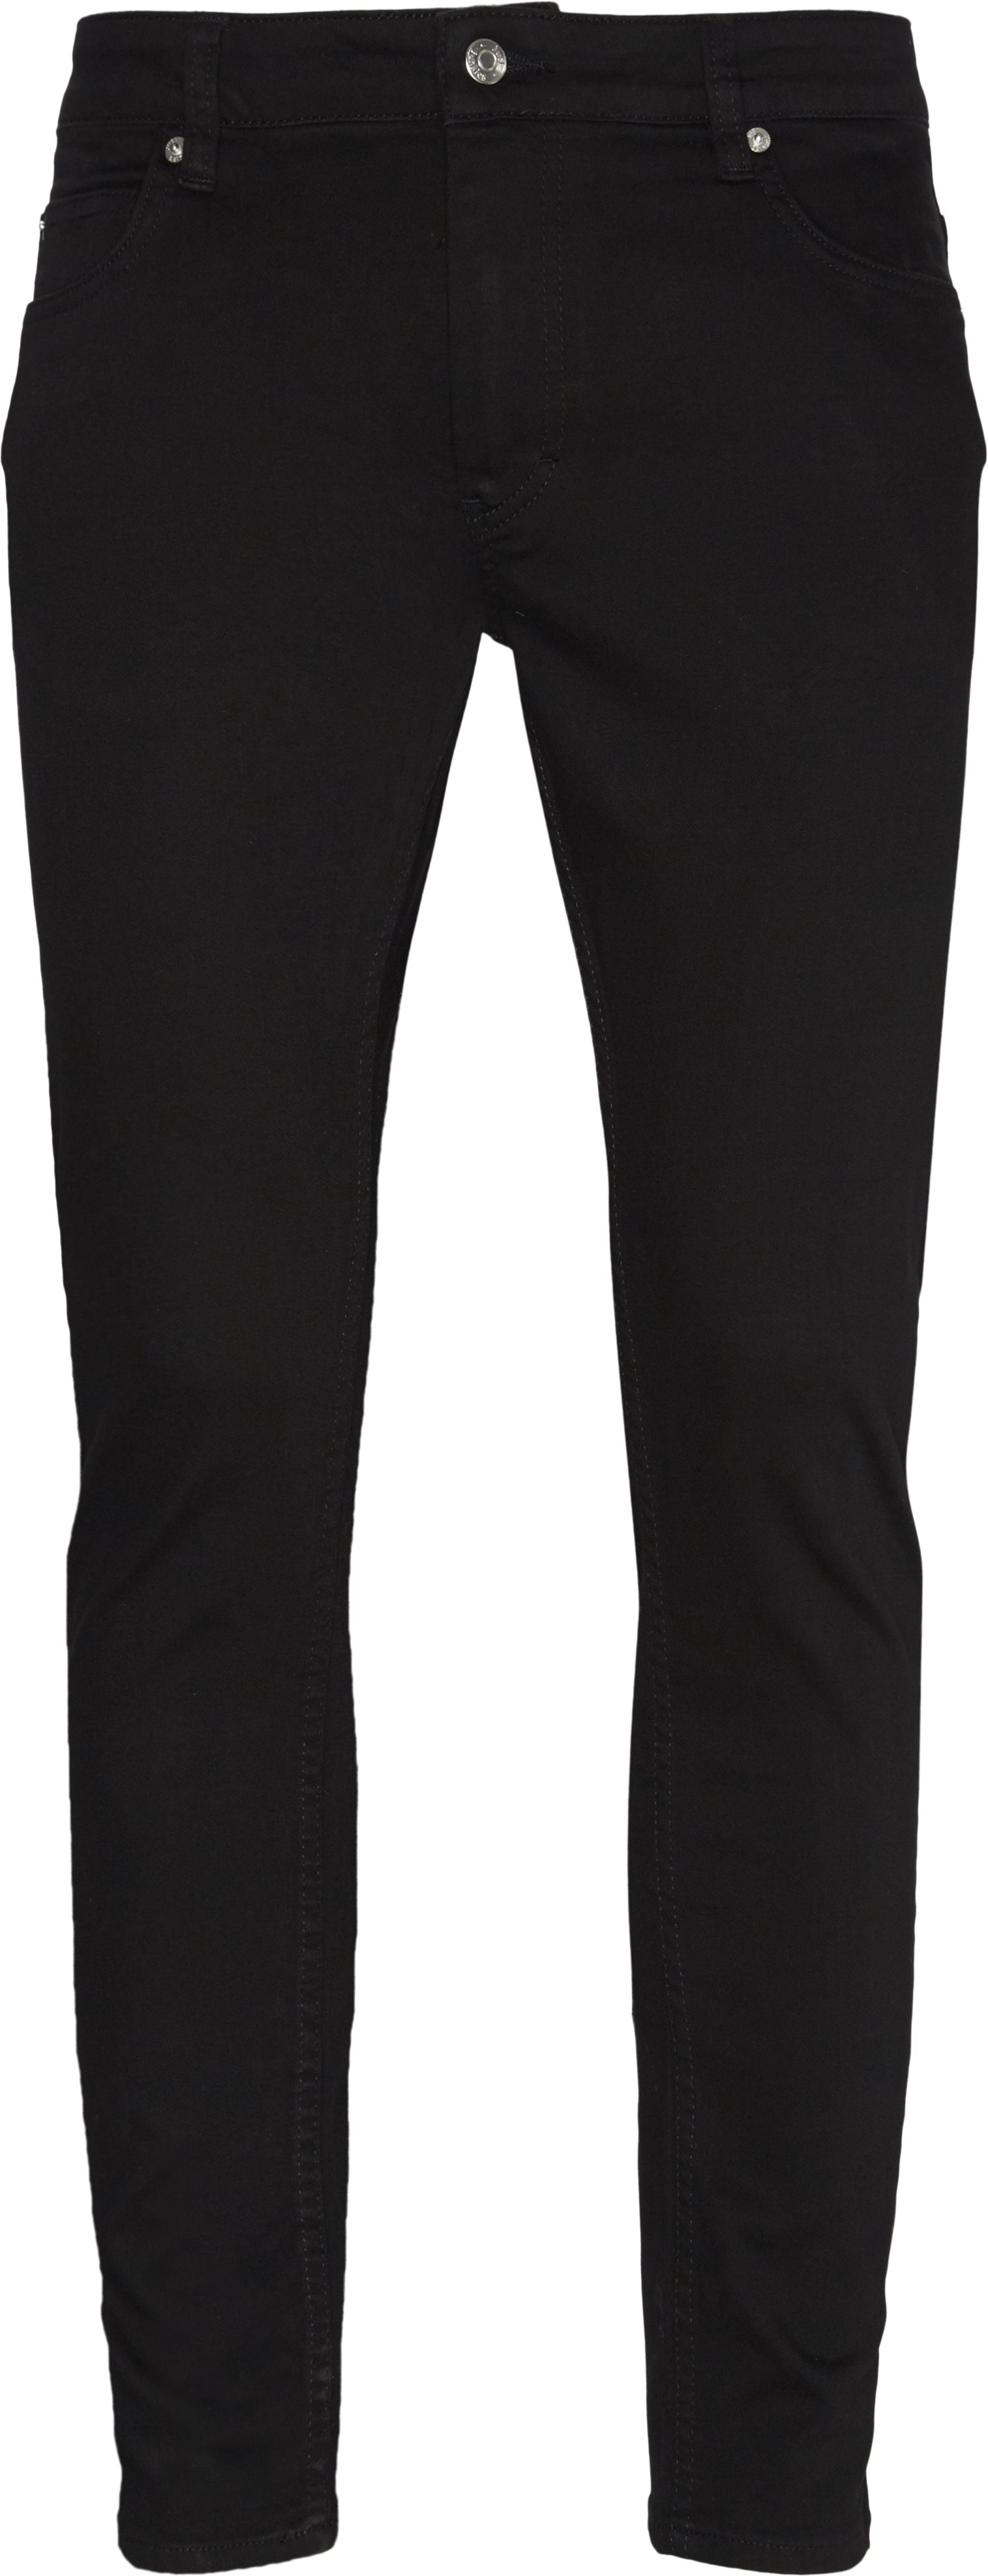 Max Black Jeans - Jeans - Slim - Sort